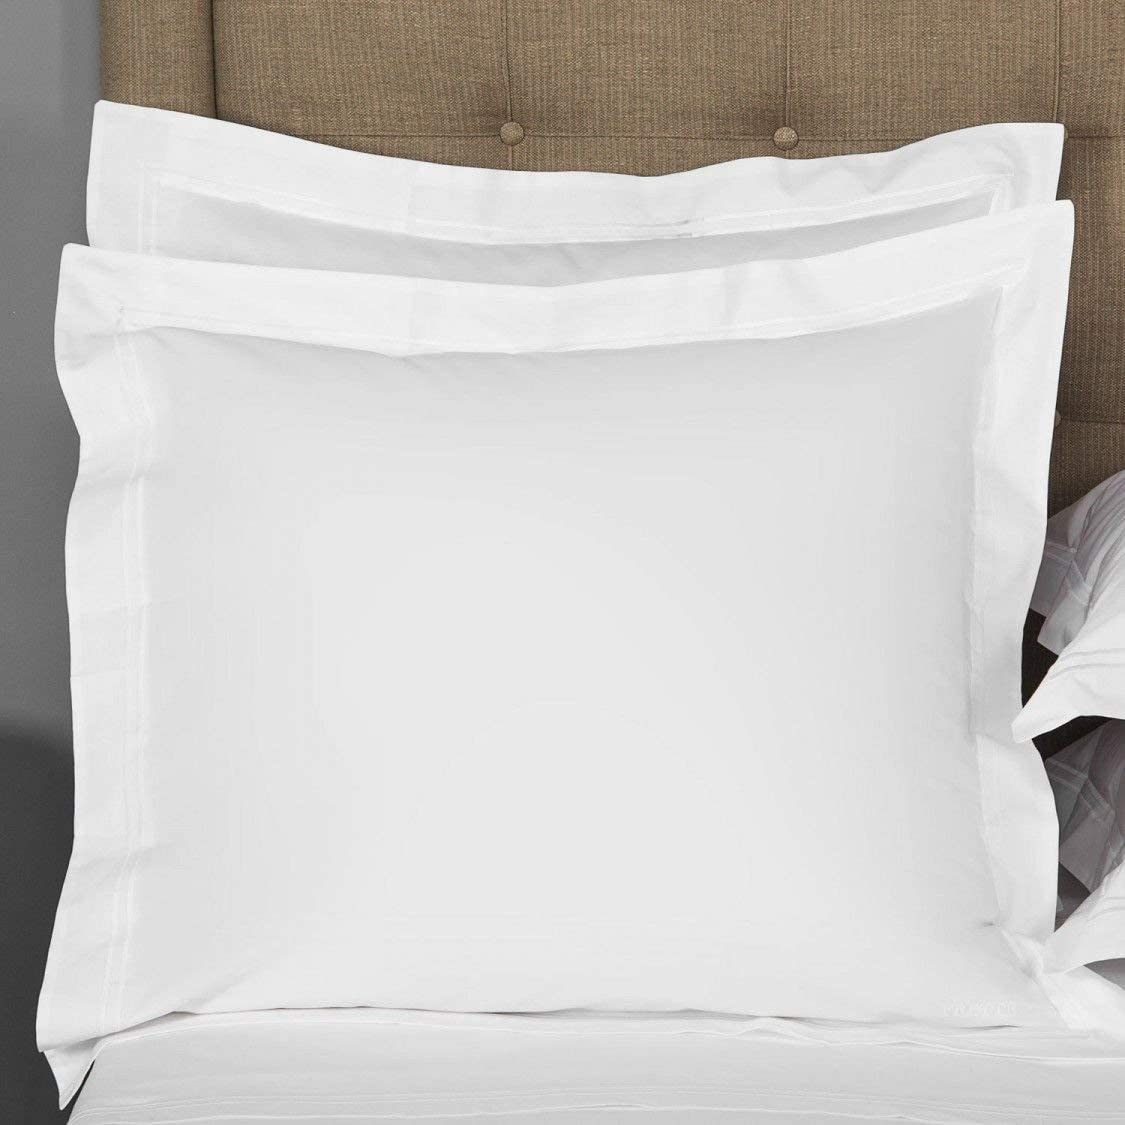 Noble Comfort Linen Hotel Luxurious Quality 2 Piece Euro Shams 100% Organic Cotton 650 Thread Count Pattern Solid (16 x16 Color White)